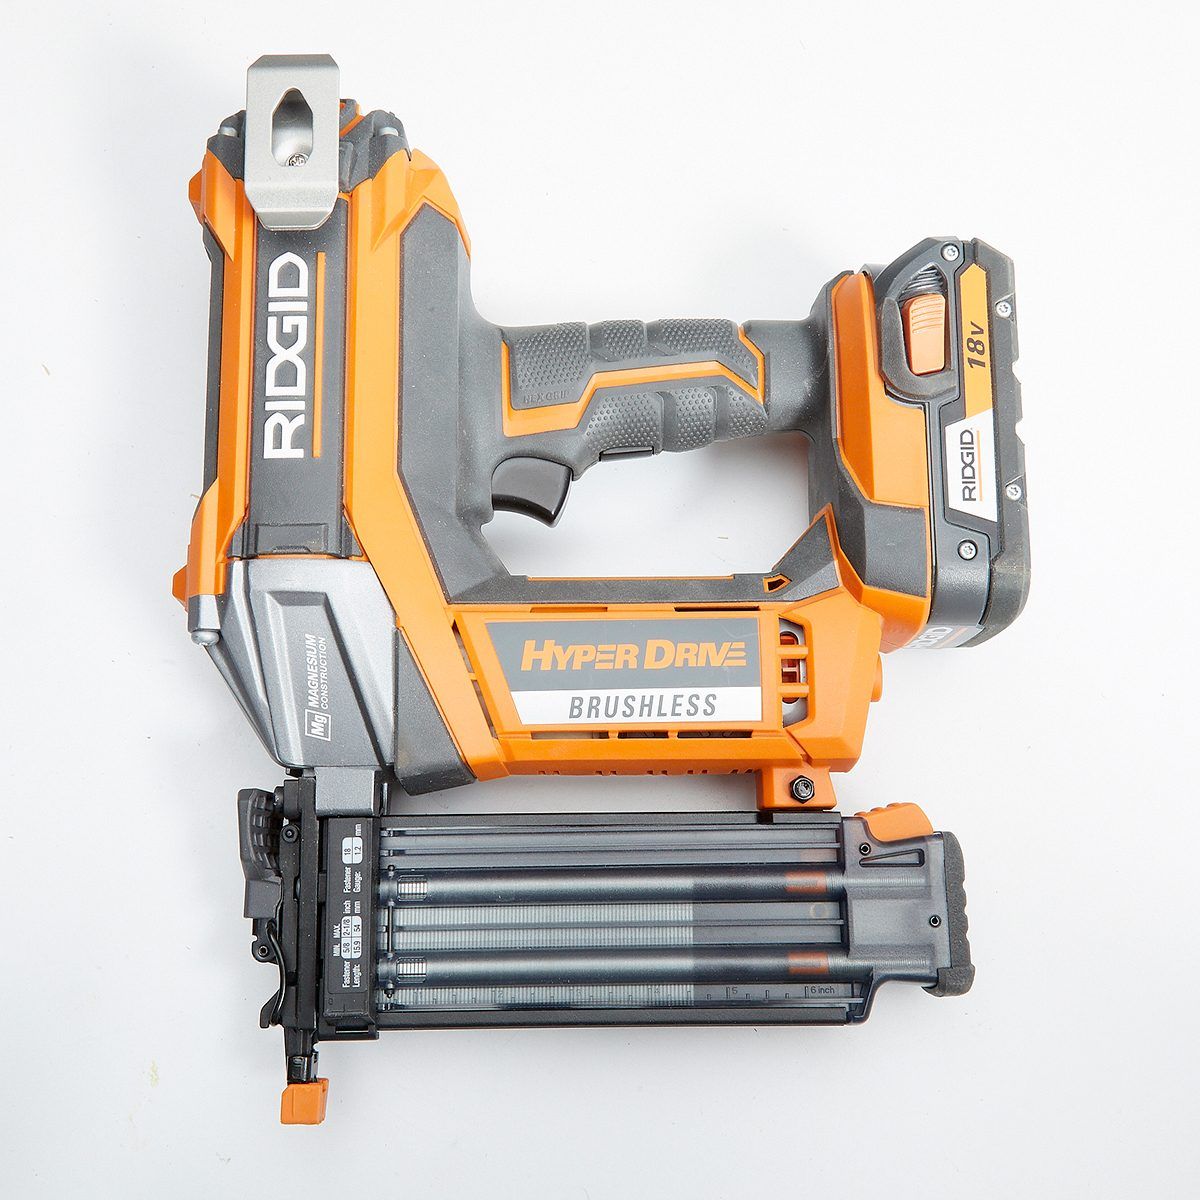 Ridgid Brad Nailer Featuring Dry Fire Lockout | Construction Pro Tips